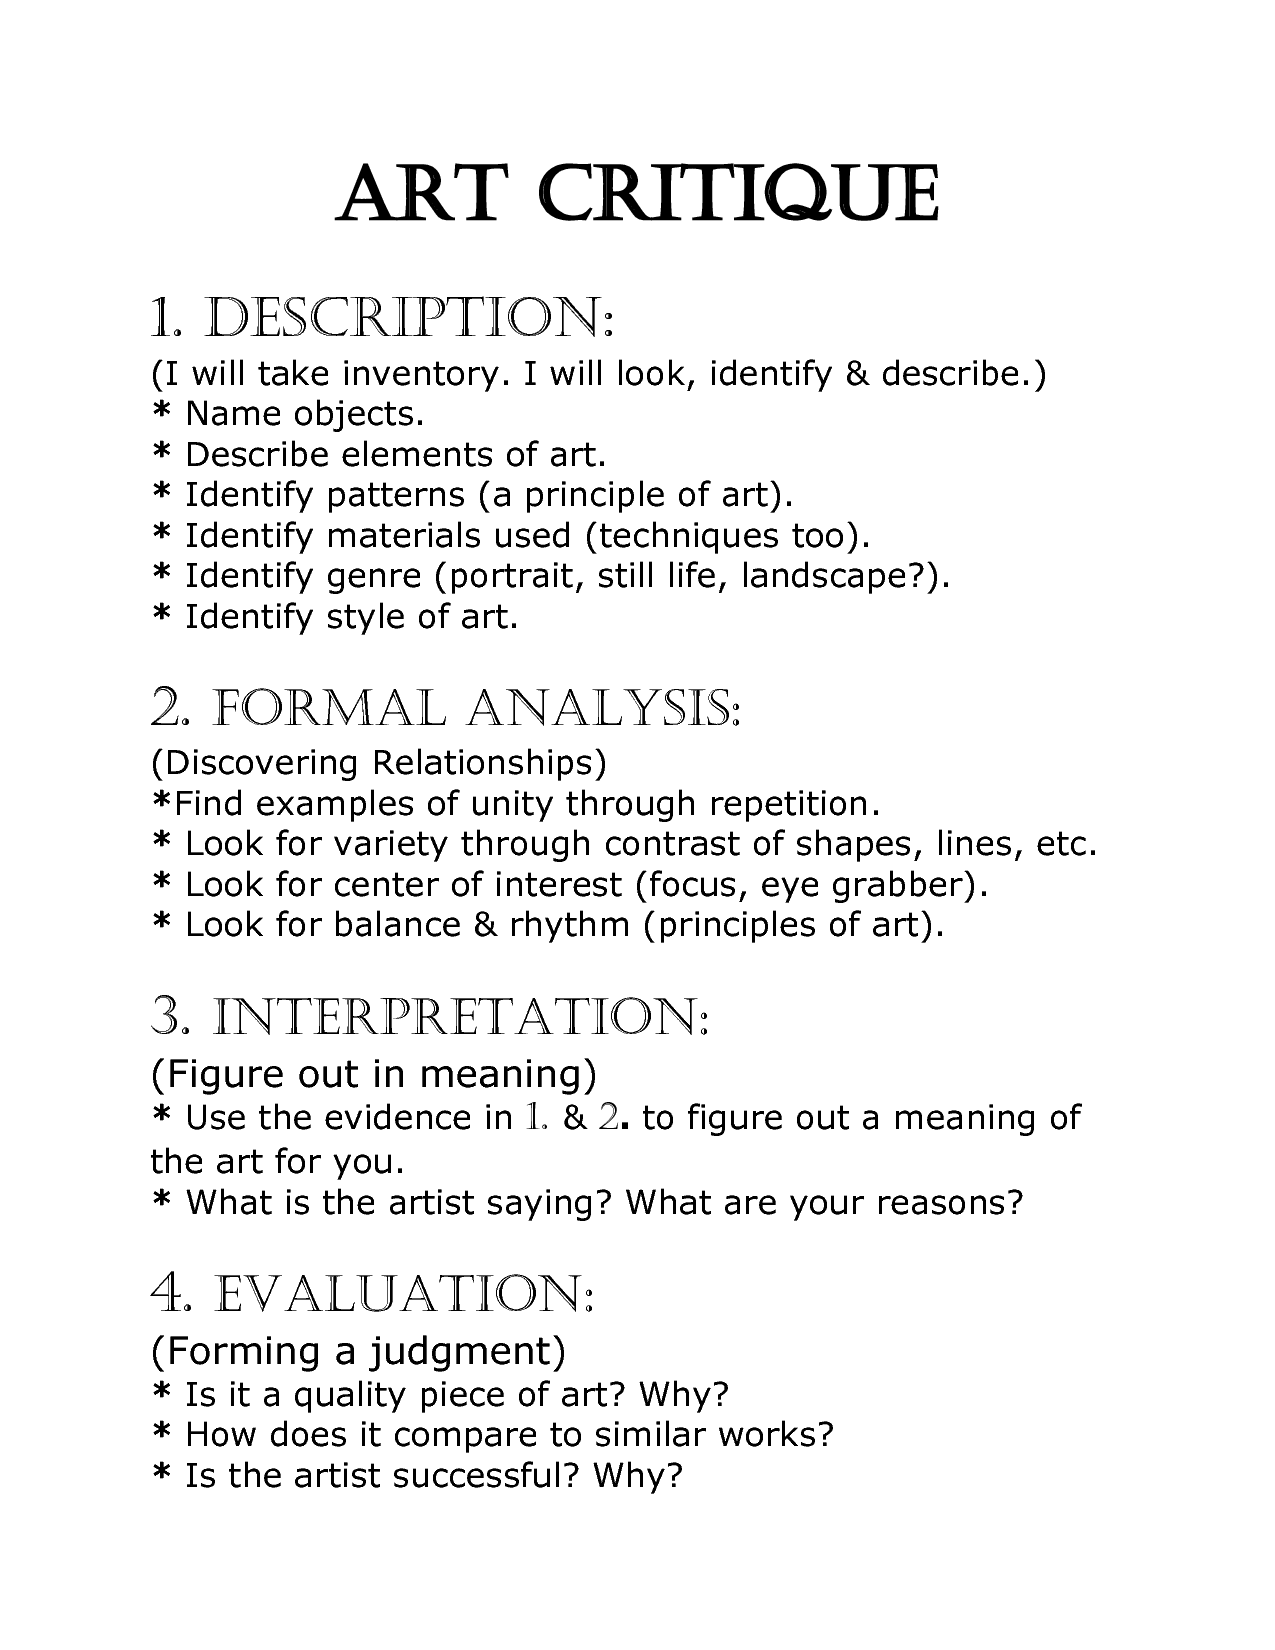 Art Critique Worksheet